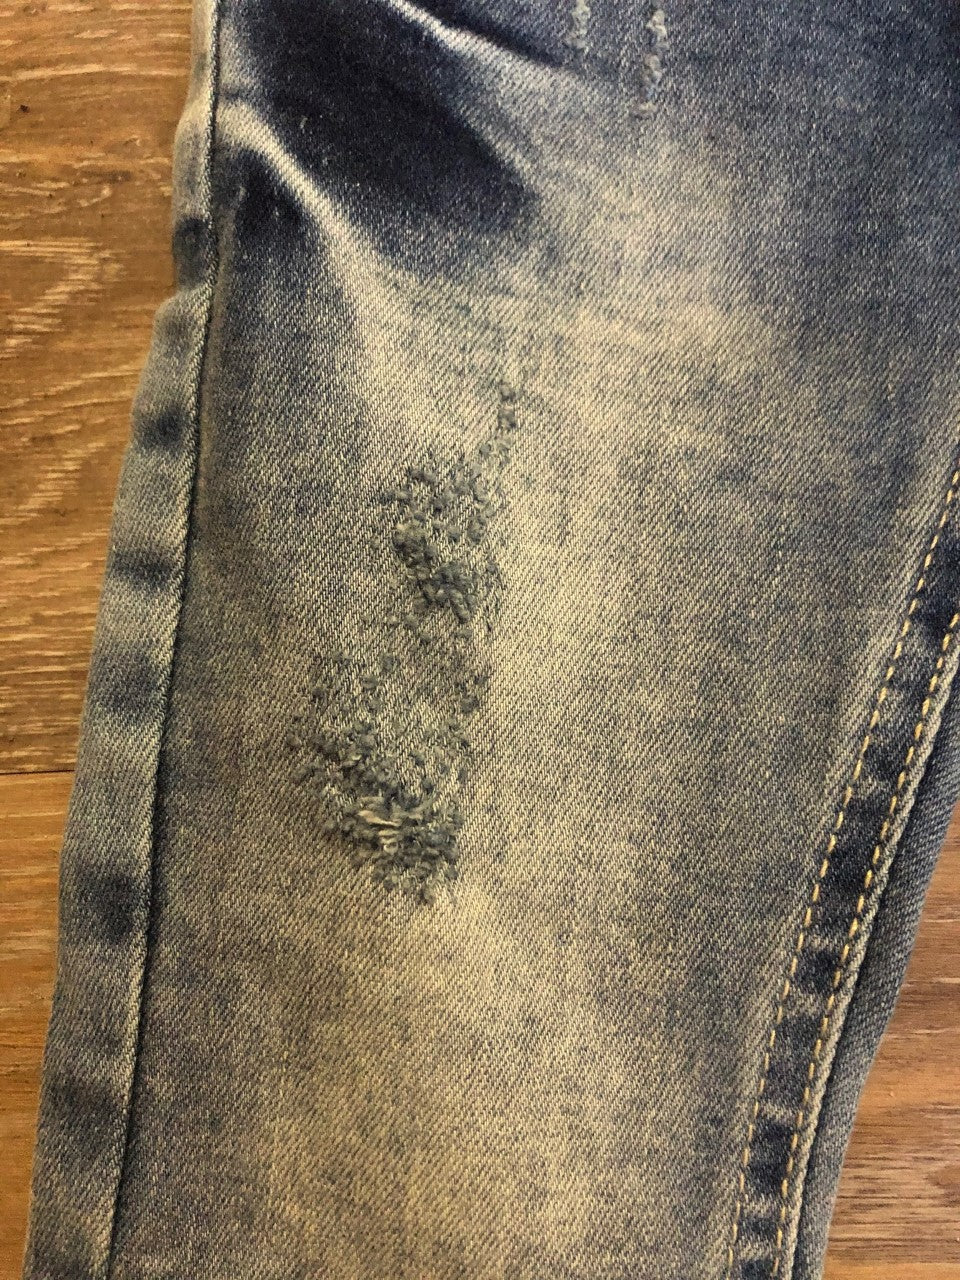 Happy Days Distressed Denim Jeans - Lullaby's Boutique